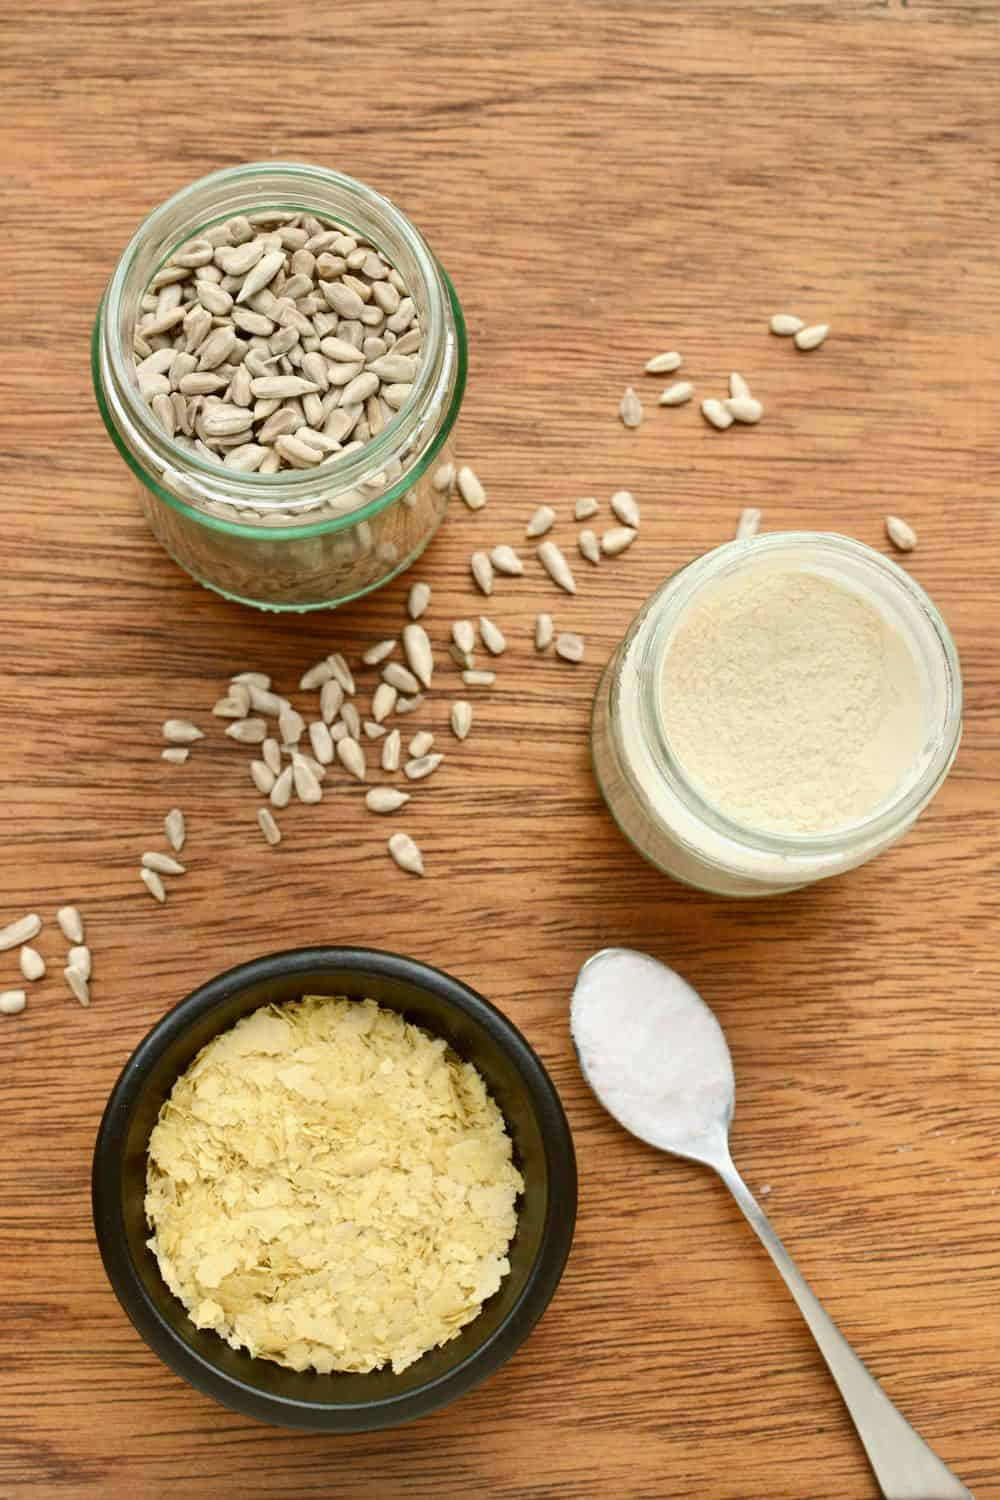 All the ingredinet laid out on a board - sunflower seeds in a jar, nutritional yeast flakes, garlic powder and salt